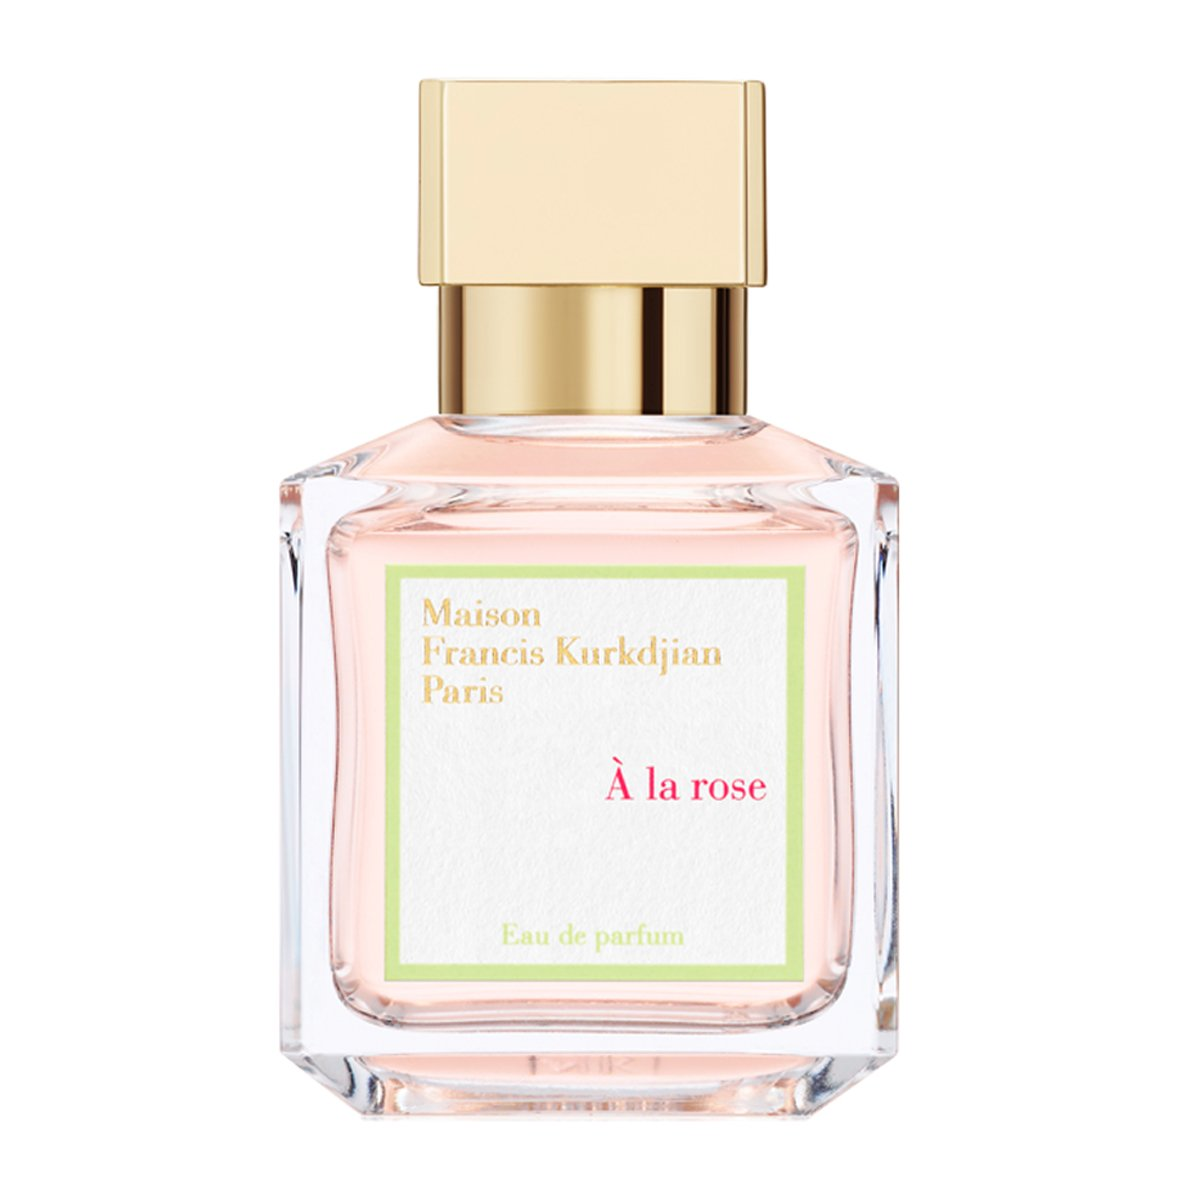 A La Rose by Maison Francis Kurkdjian Eau De Parfum 2.3 oz Spray